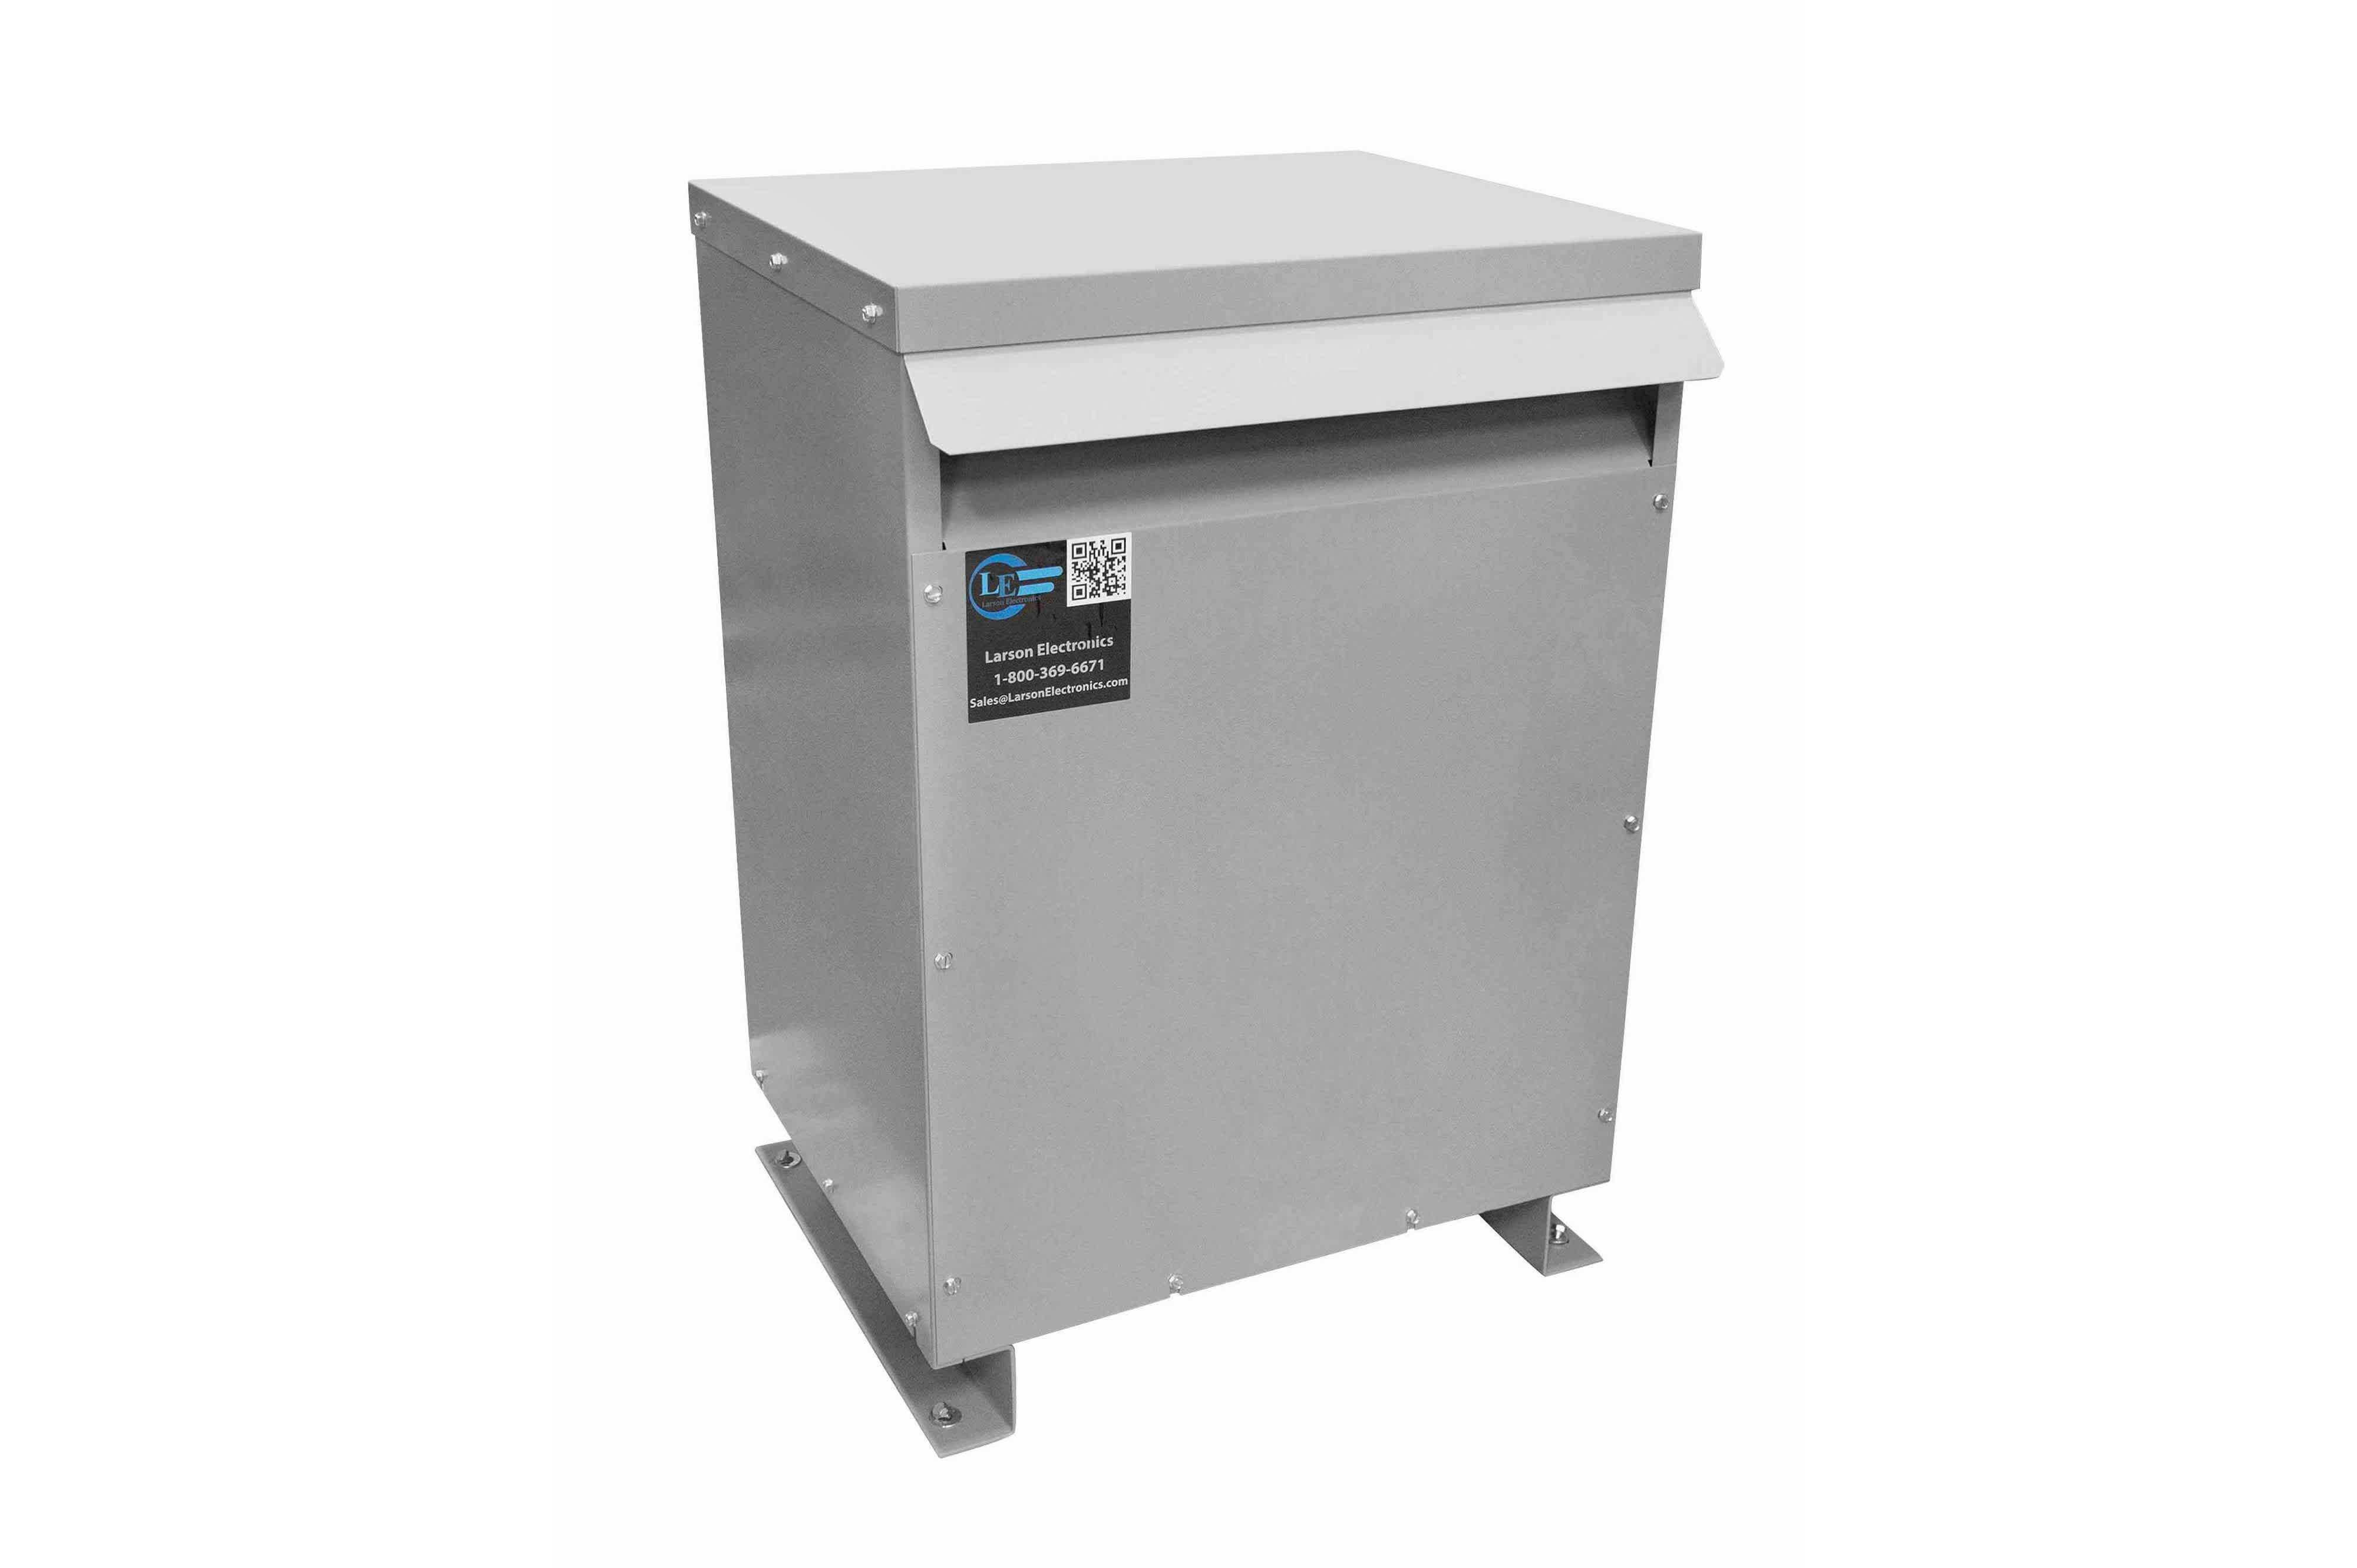 137.5 kVA 3PH Isolation Transformer, 480V Wye Primary, 600V Delta Secondary, N3R, Ventilated, 60 Hz